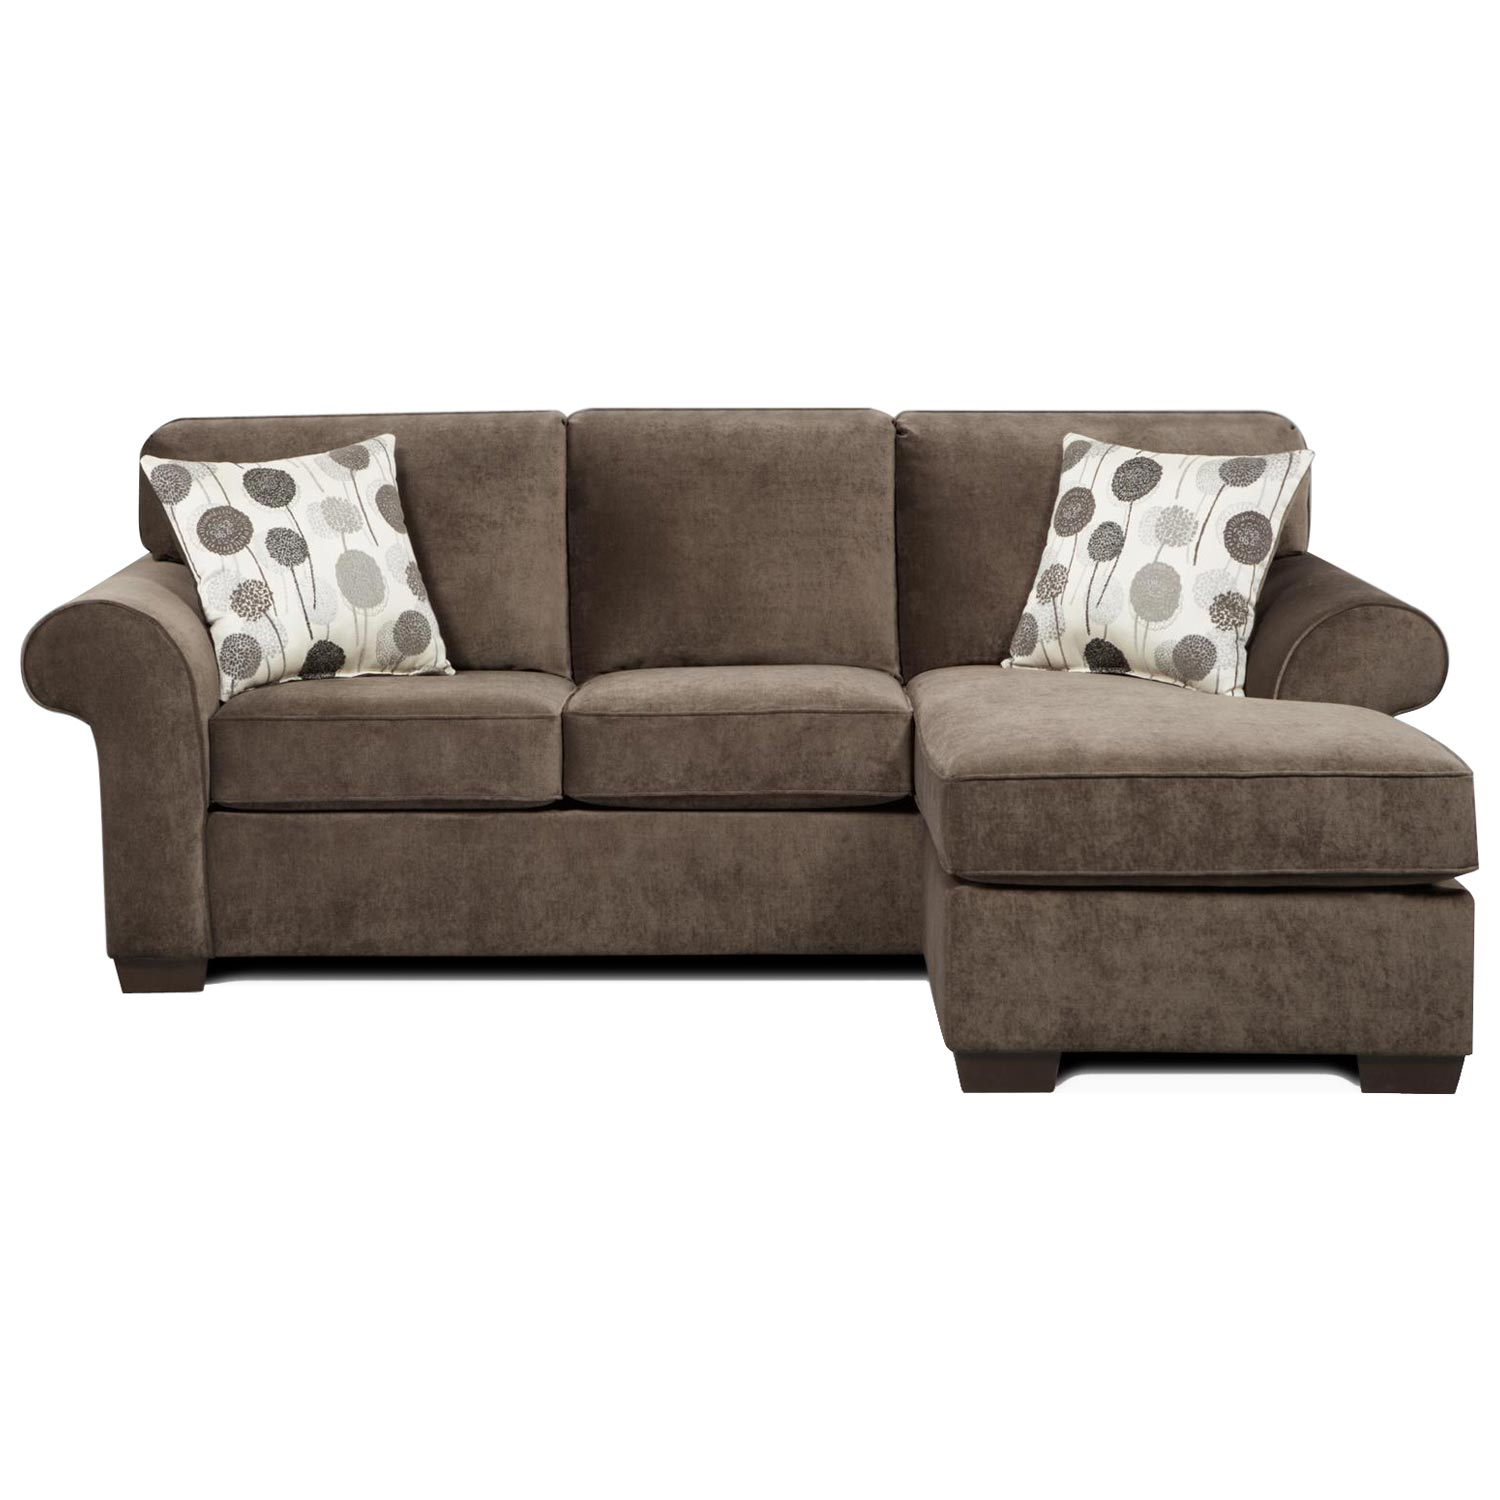 Sofa Sleeper Chaise: Worcester Transitional Sleeper Sofa Chaise